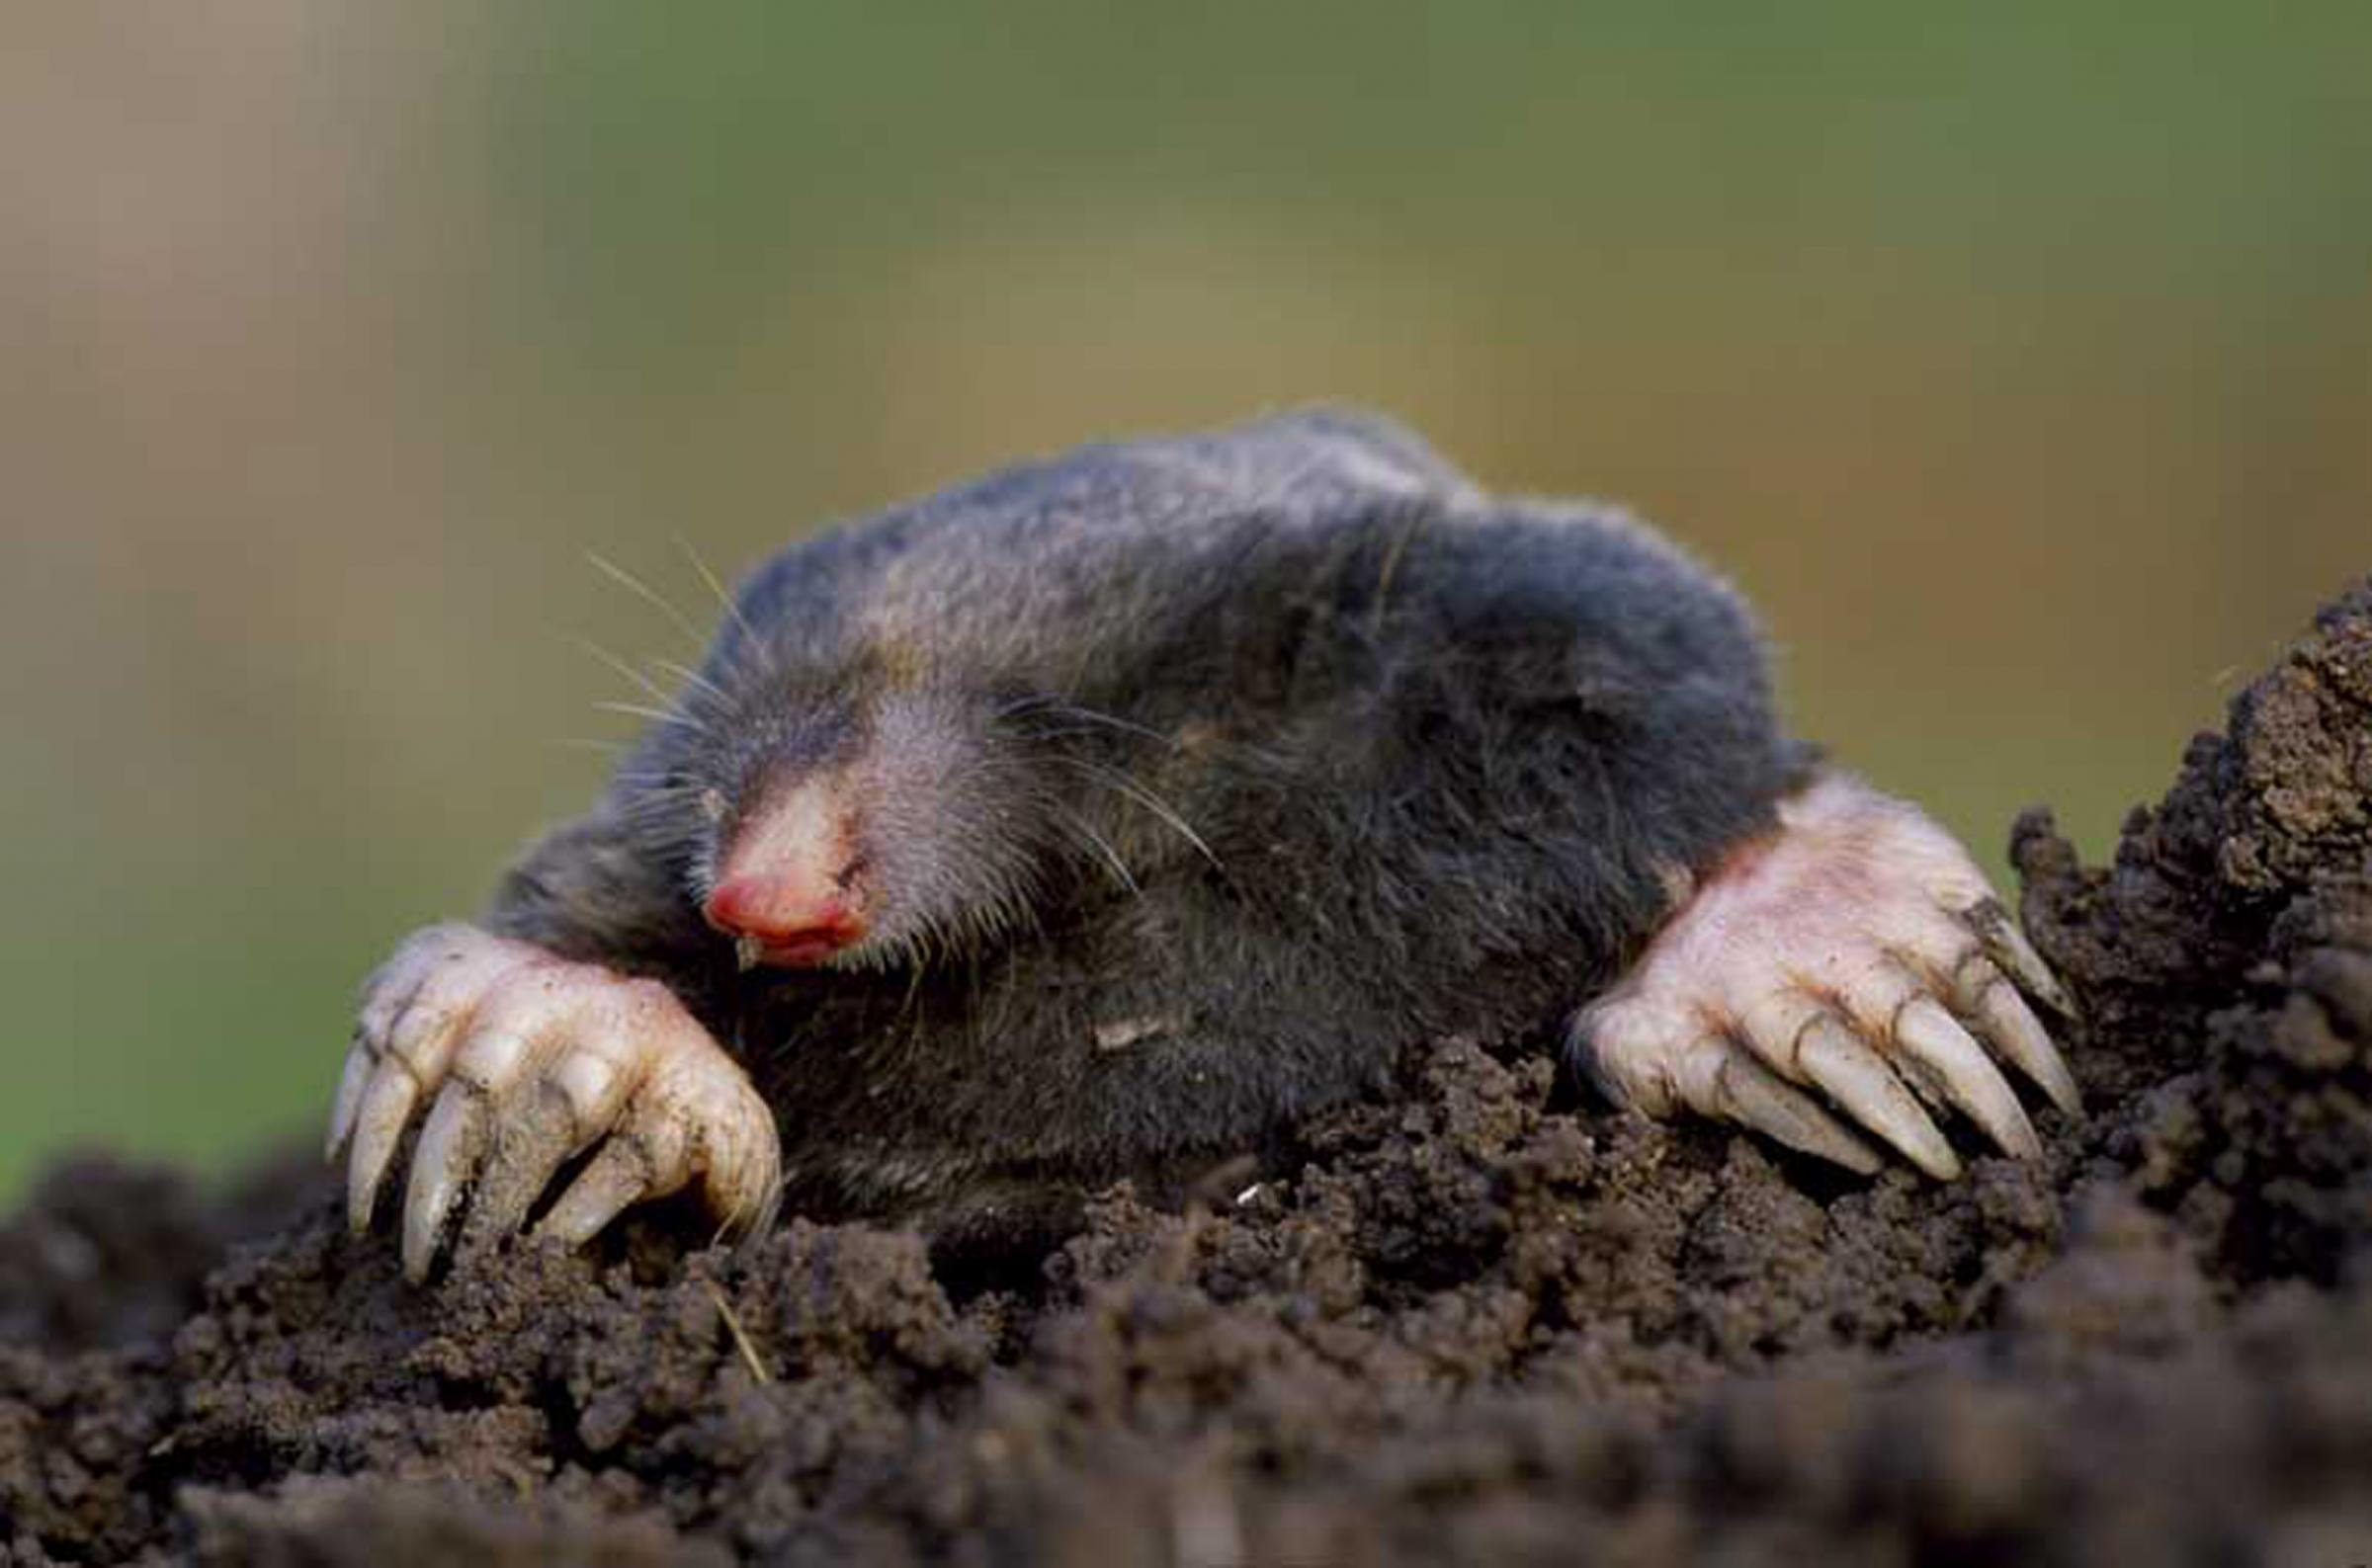 Moles are causing problems at Newcastle Emlyn